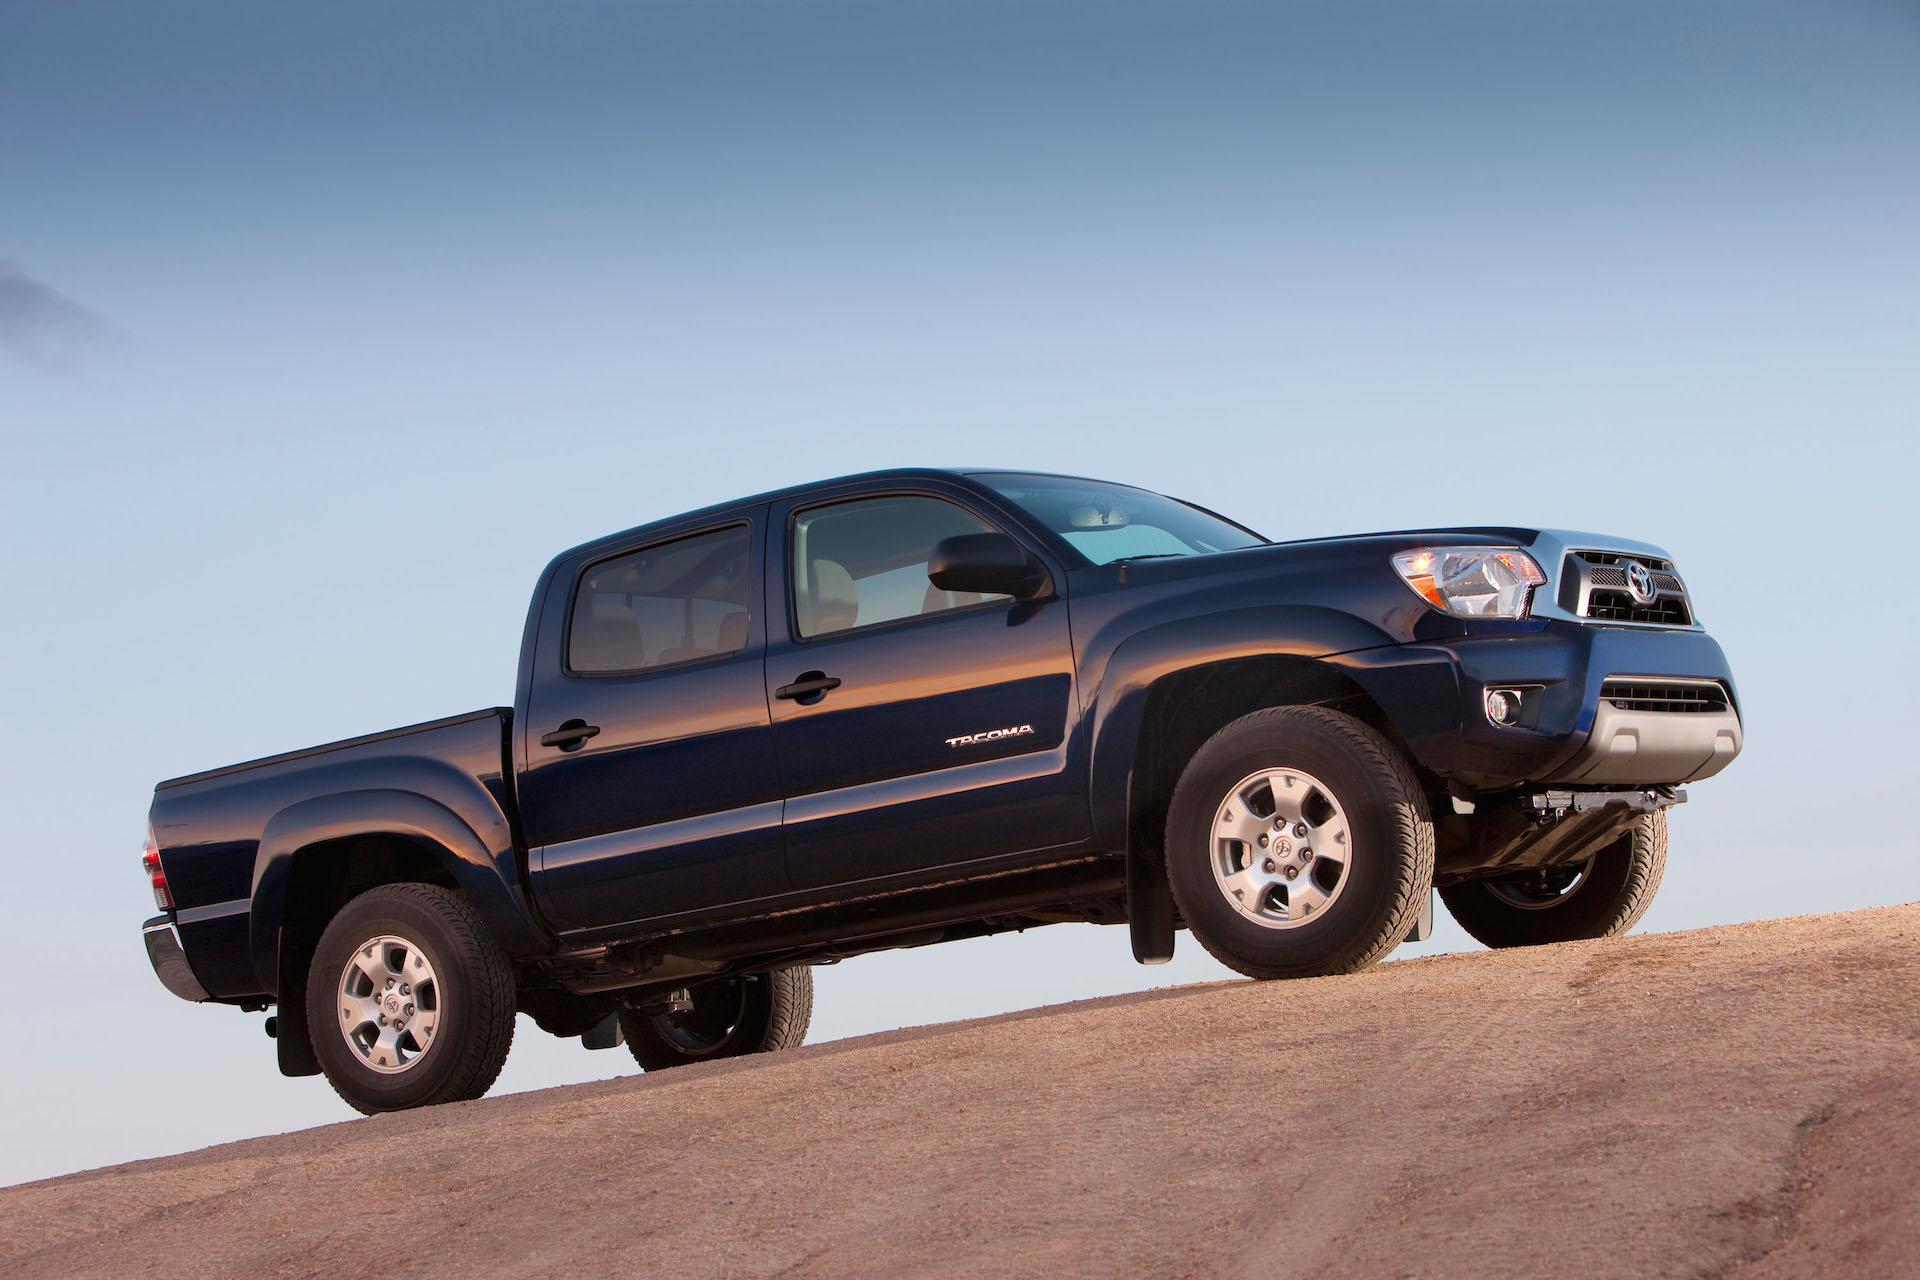 Nothing found for Toyota Tacoma 2015 Hd Wallpapers Hd Wallpapers Fit 1920x1280